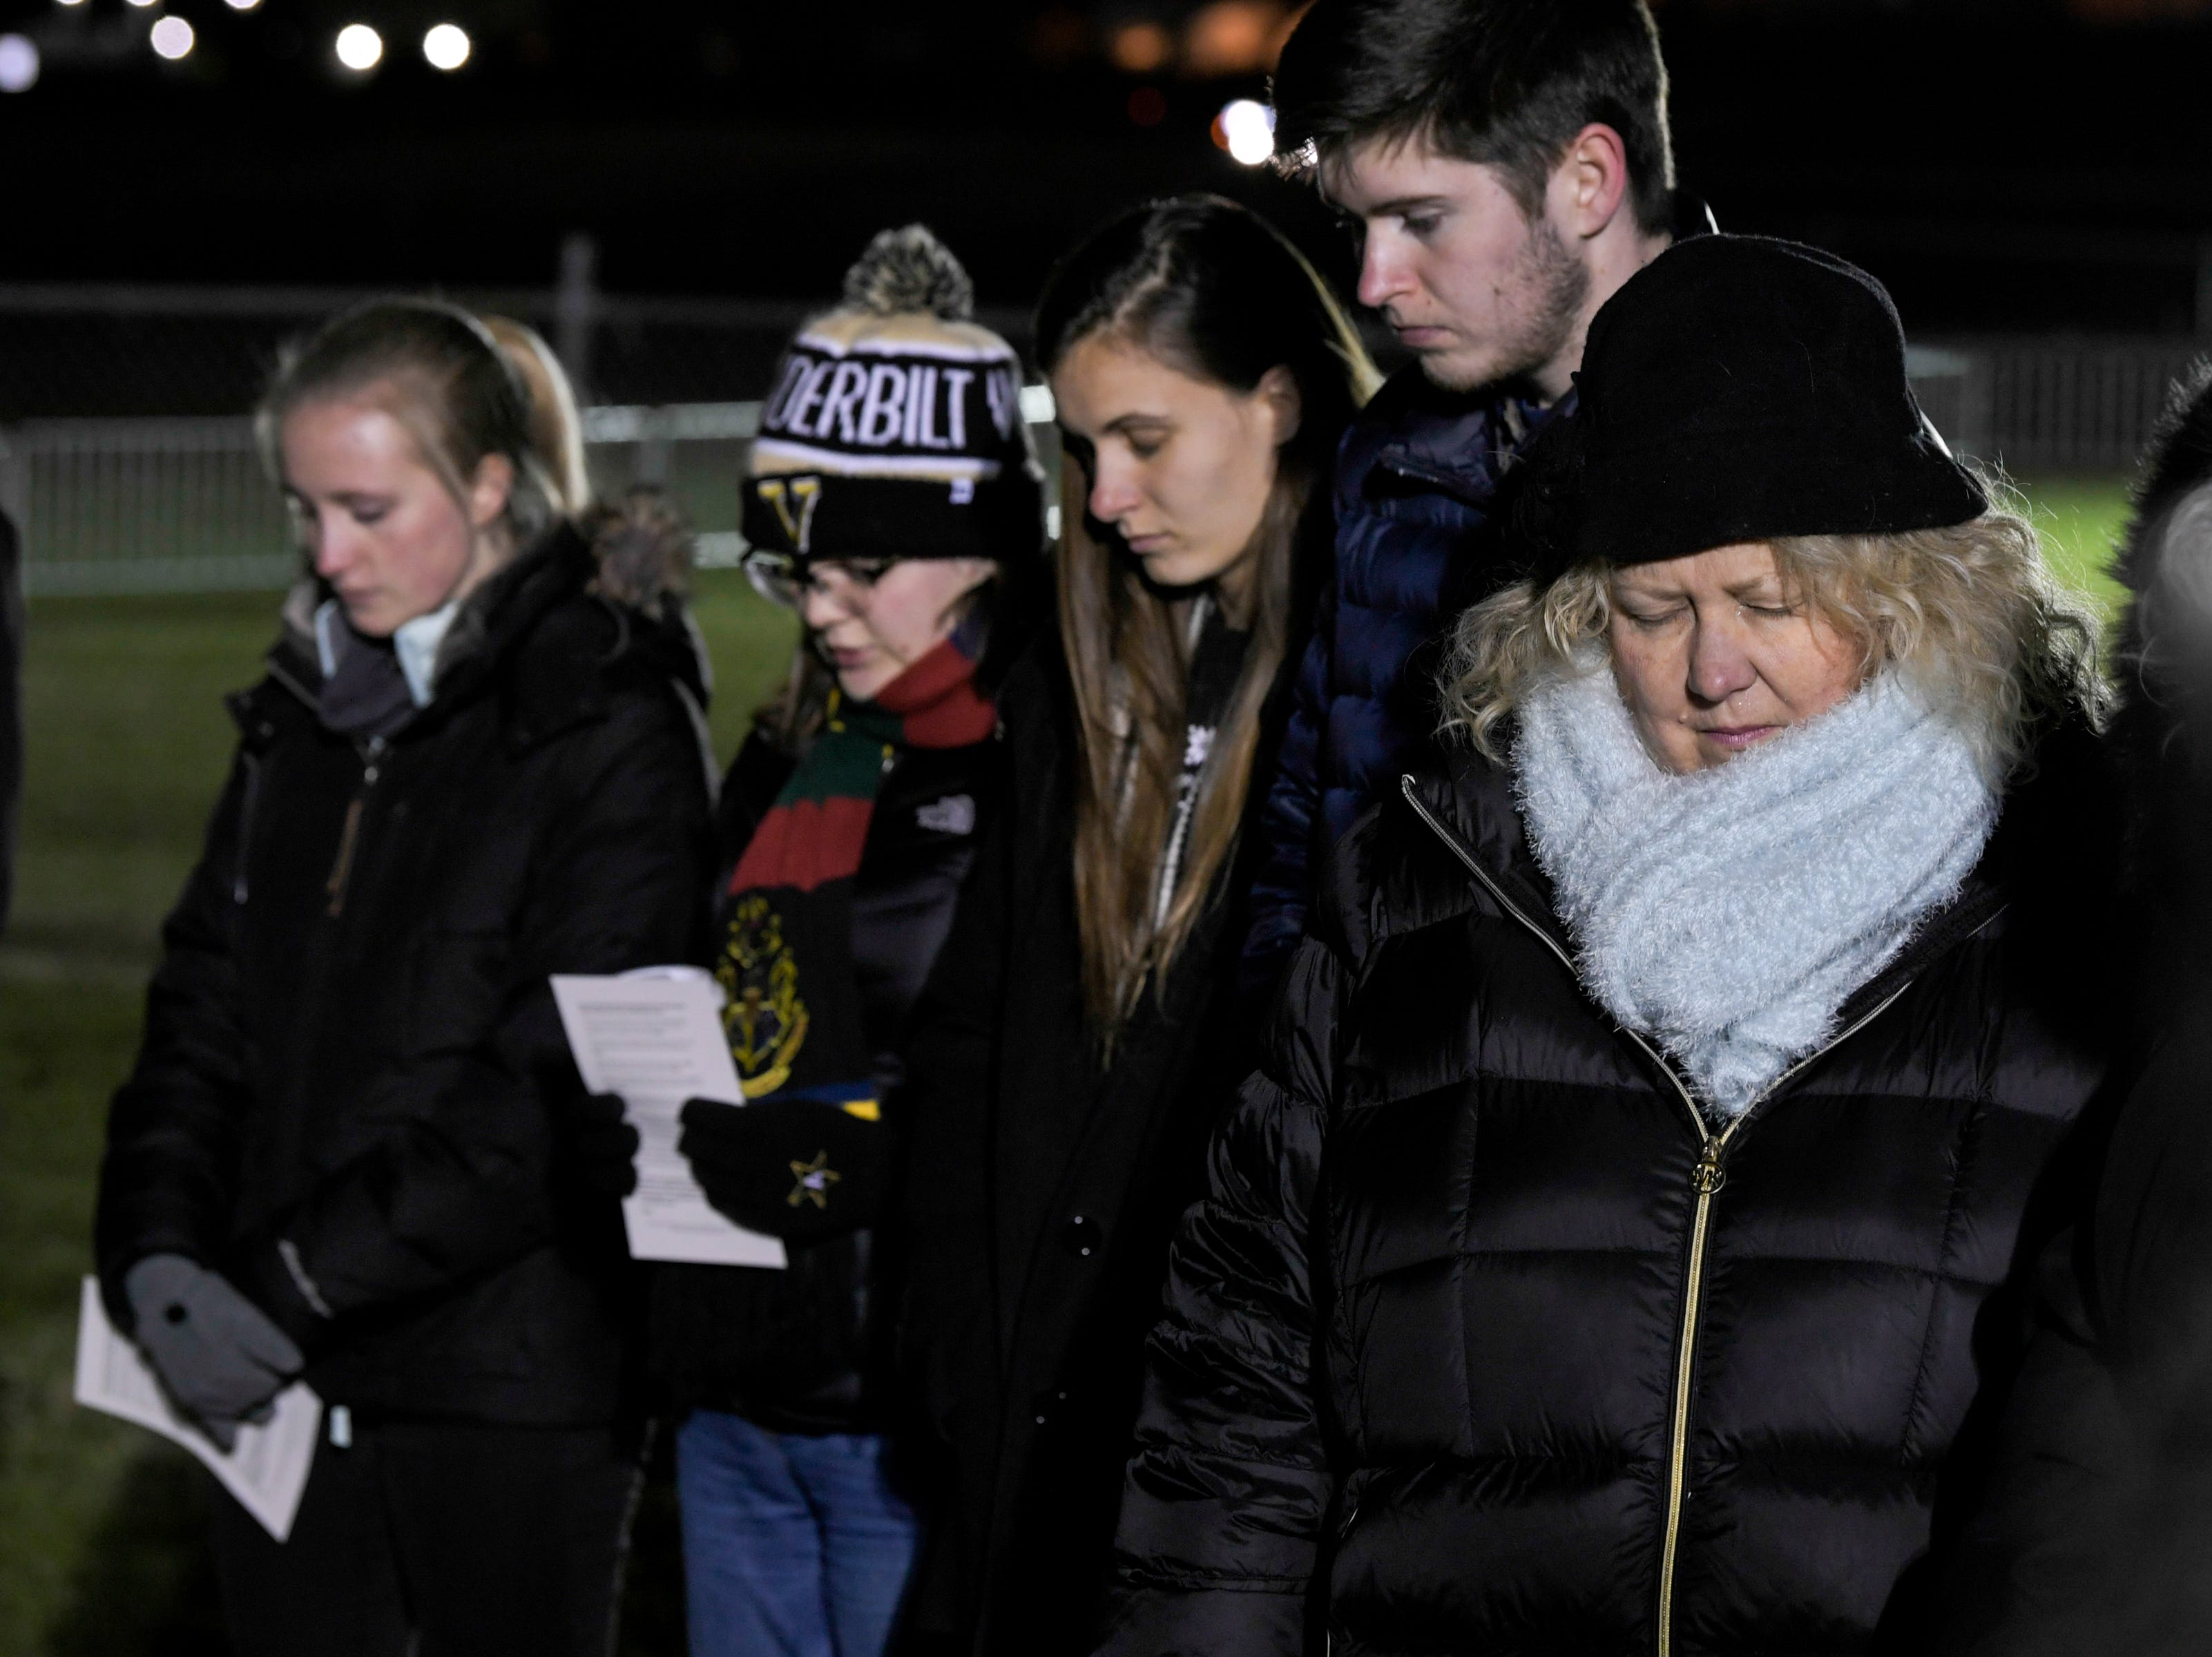 Protesters against the death penalty take a moment of silence in a field outside Riverbend Maximum Security Institution before the execution of Tennessee death row inmate David Earl Miller on Thursday, Dec. 6, 2018 in Nashville, Tenn. Miller was sentenced to death for the 1981 murder of Lee Standifer, 23, in Knoxville.